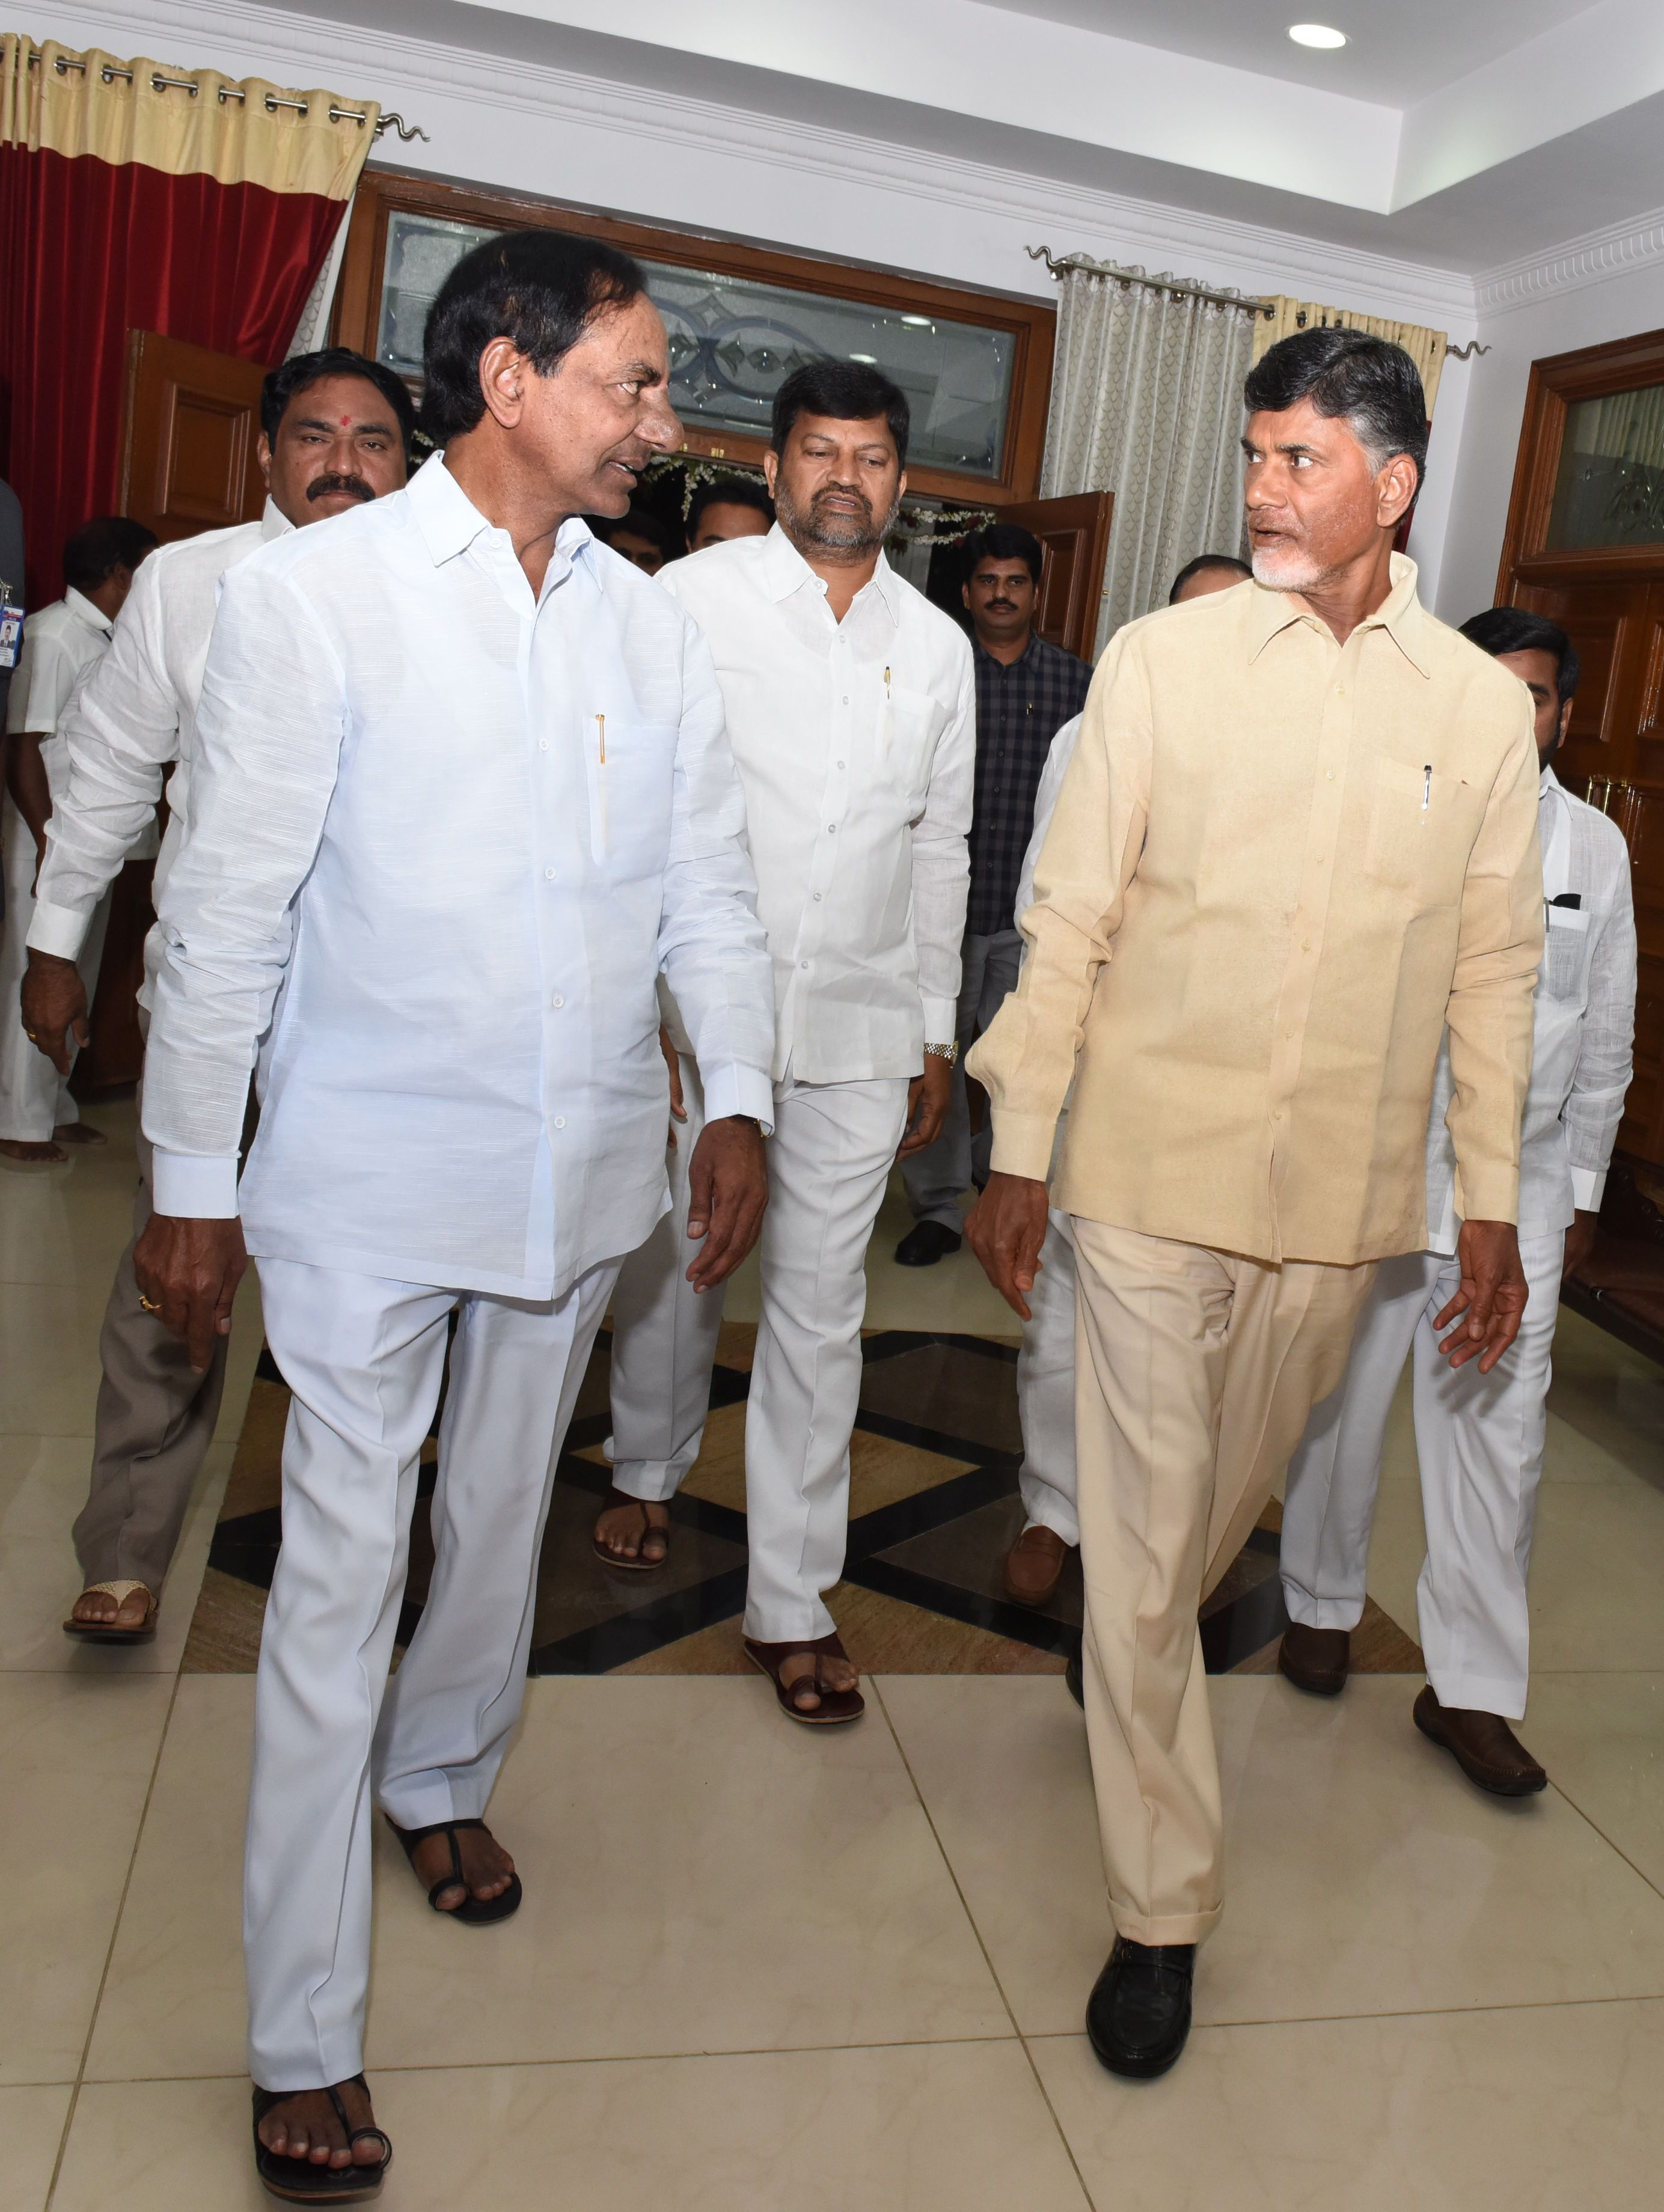 AP CM N. Chadrababu Naidu met TS CM K. Chandrashekhar Rao at CMs Camp office, Begumpet on October 18, for the foundation stone ceremony of \